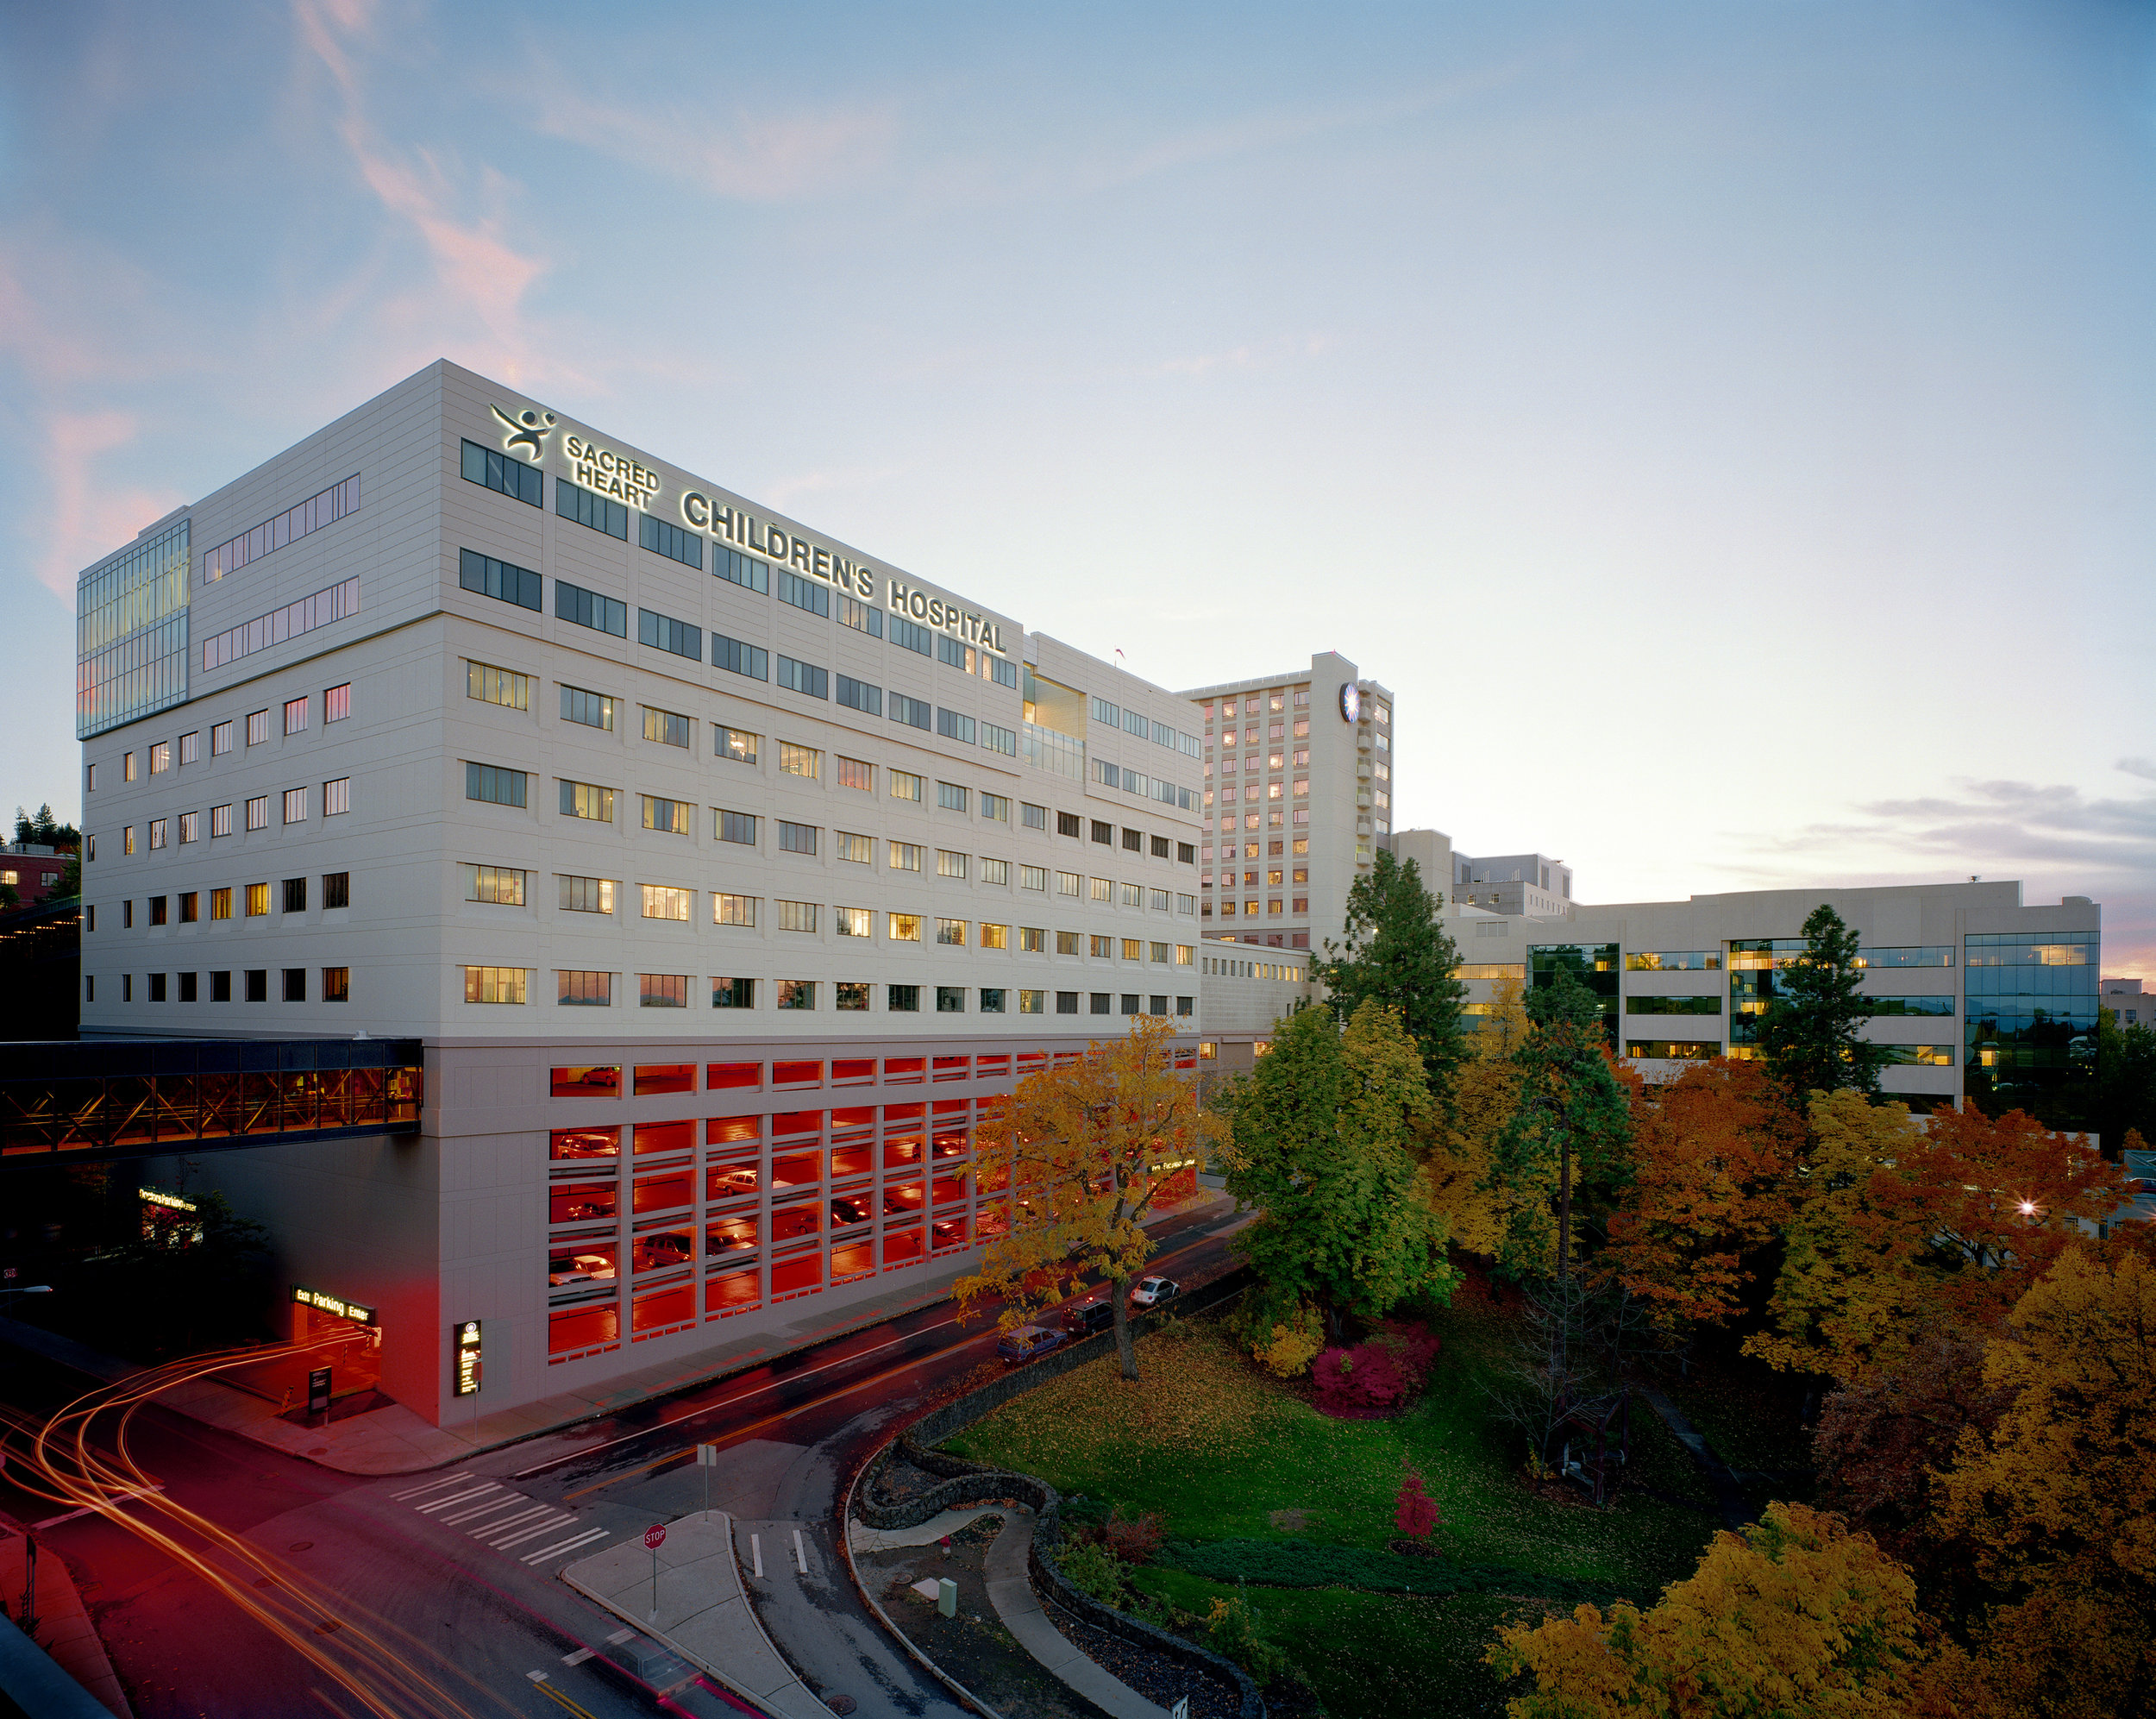 Providence Sacred Hearth Medical Center in Spokane Washington